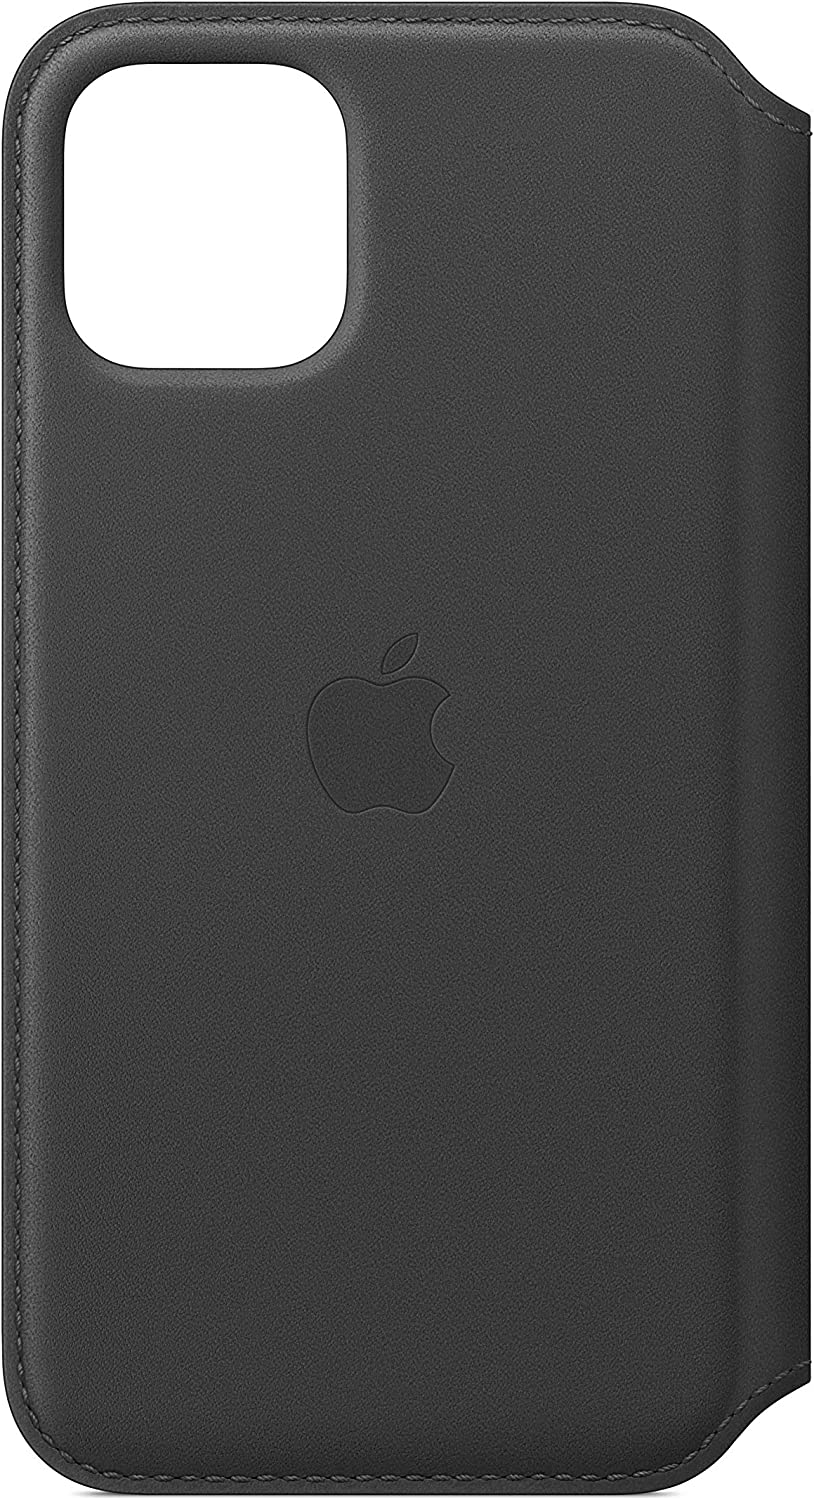 Apple Leather Folio (for iPhone 11 Pro) - Black